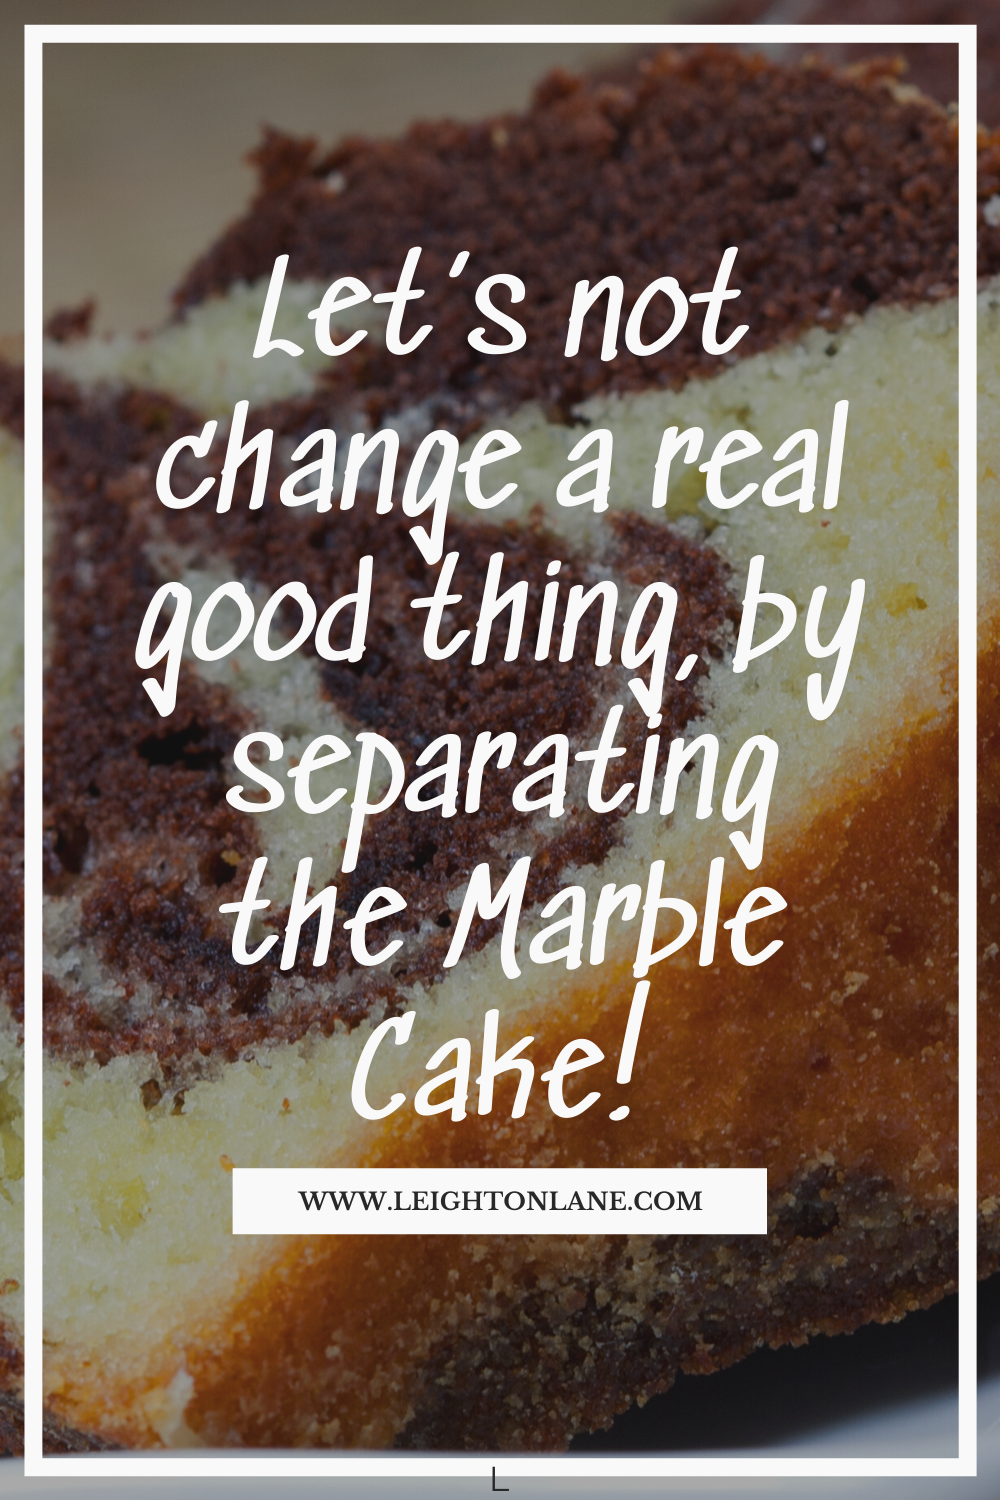 Let's not change a real good thing, by separating the marble cake.